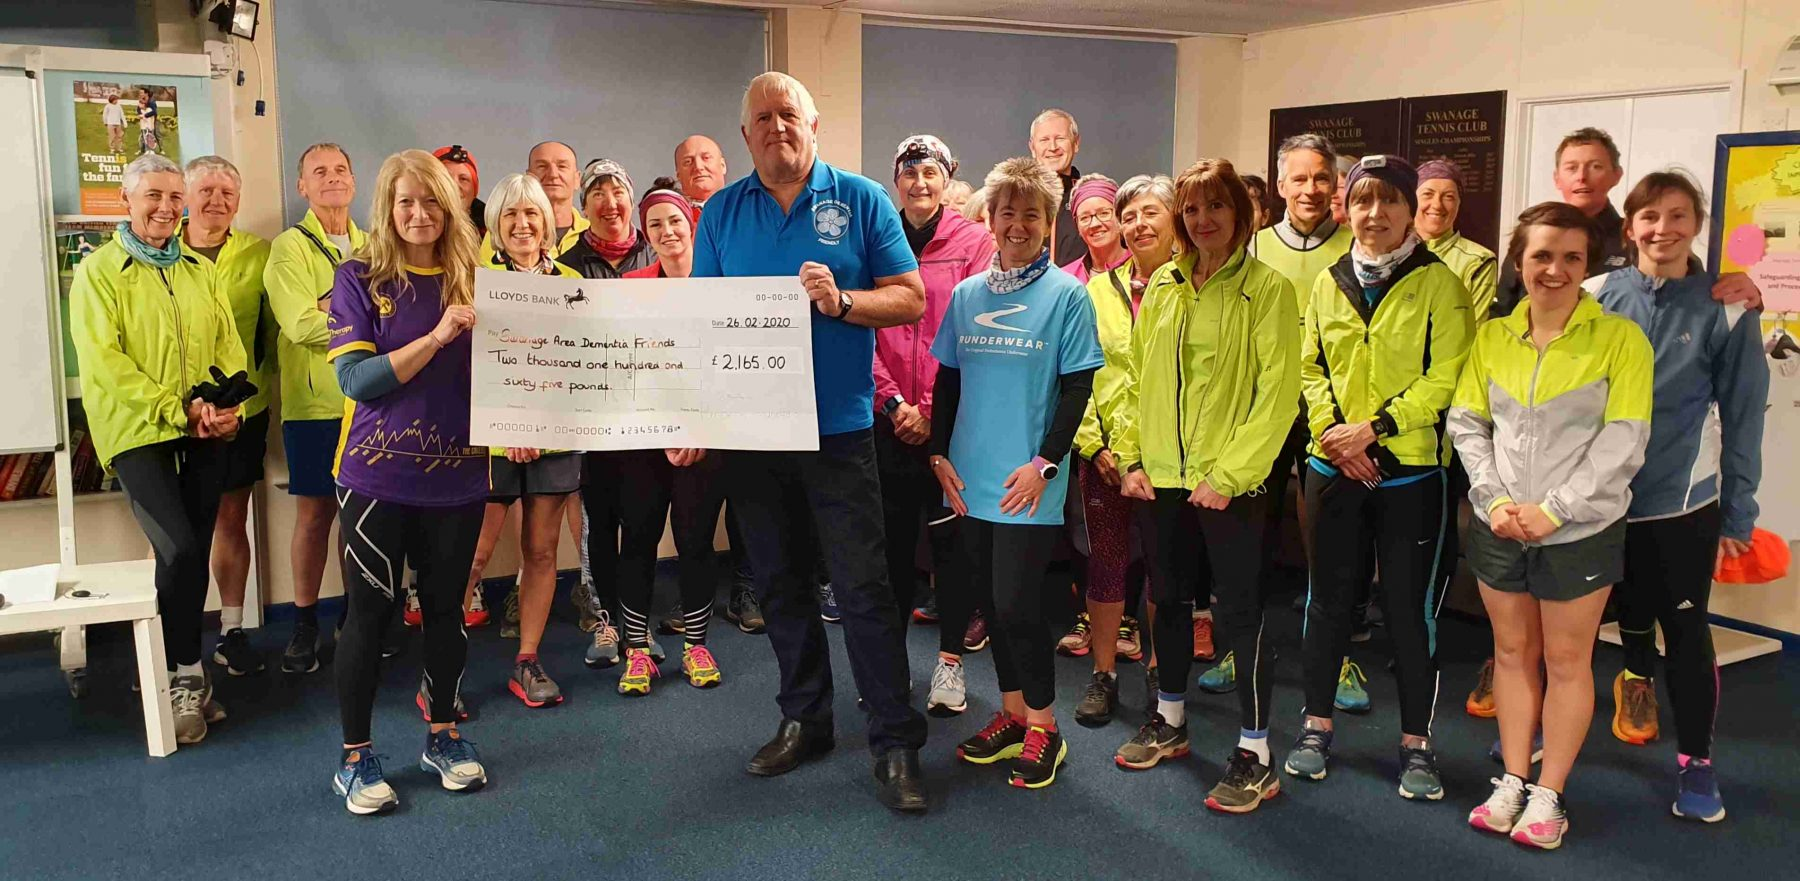 Purbeck Runners Chair Paula Lawton-Archer presenting the cheque to Charity Chair and Swanage Mayor Mike Bonfield with members of the Purbeck Runners